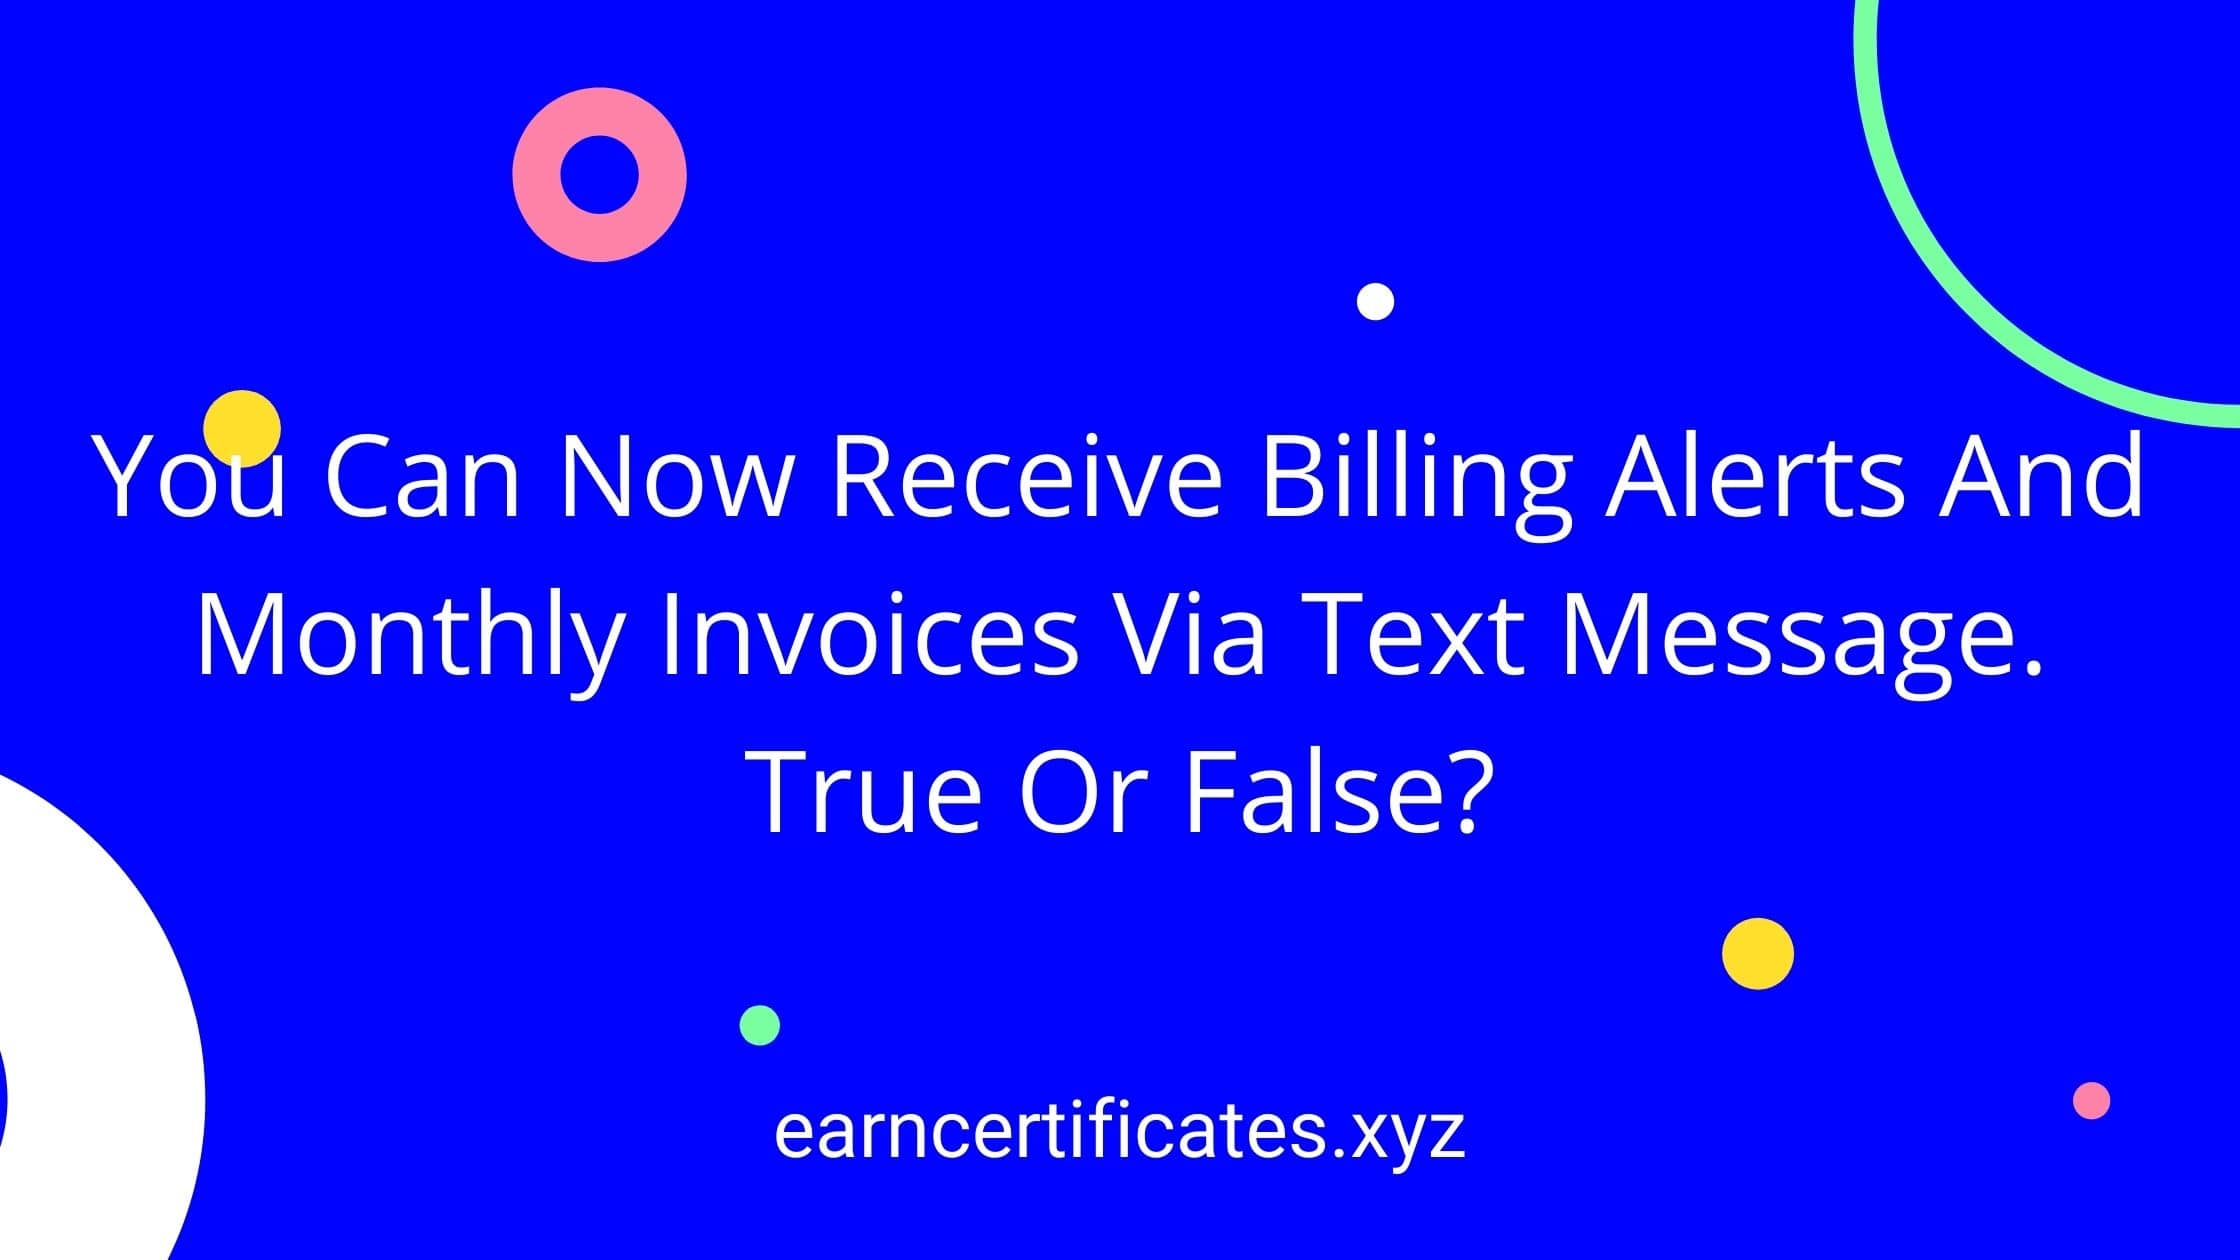 You Can Now Receive Billing Alerts And Monthly Invoices Via Text Message. True Or False?